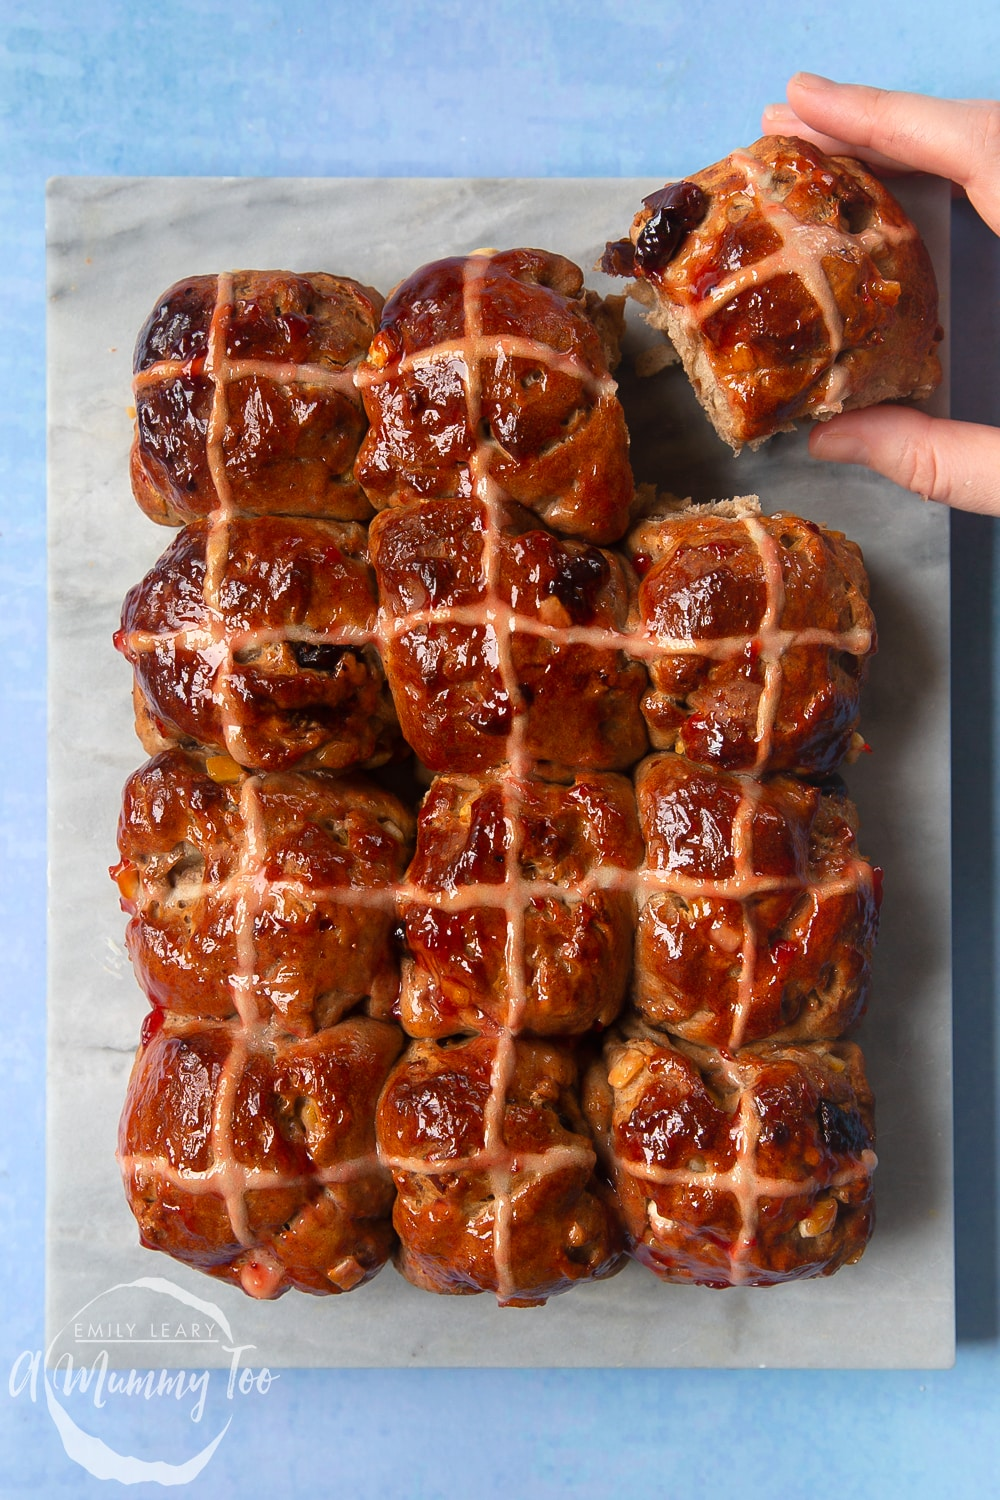 12 vegan hot cross buns on a marble board. A hand reaches in to take one.